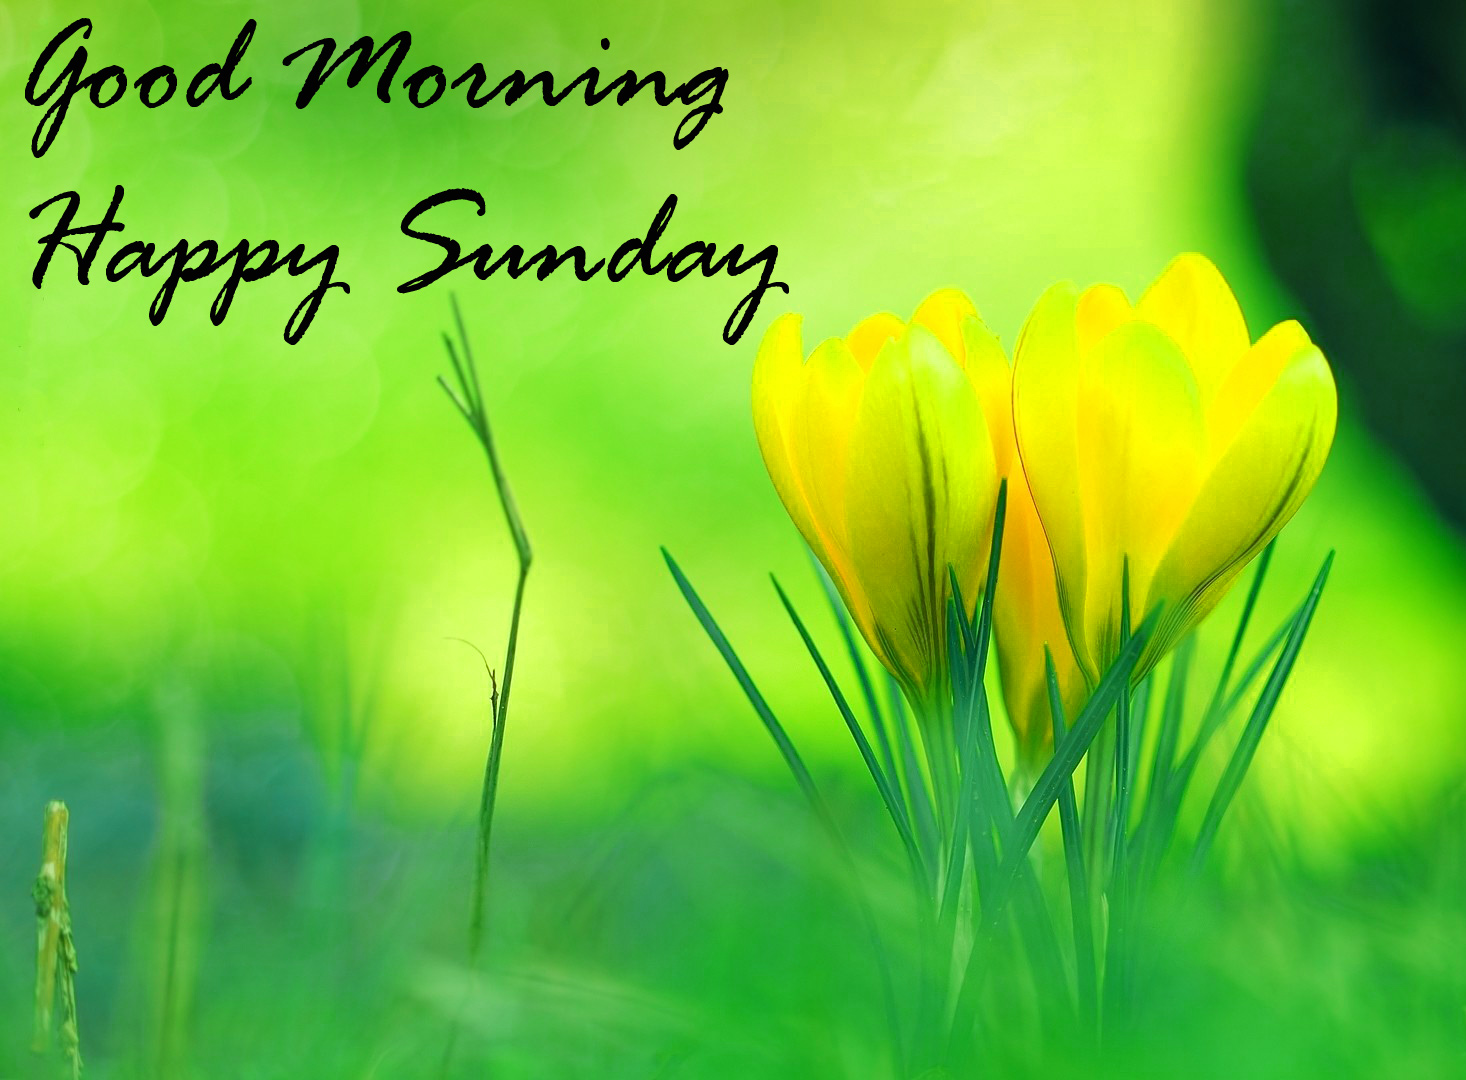 Sunday Good Morning Images Pics Free Download for Facebook